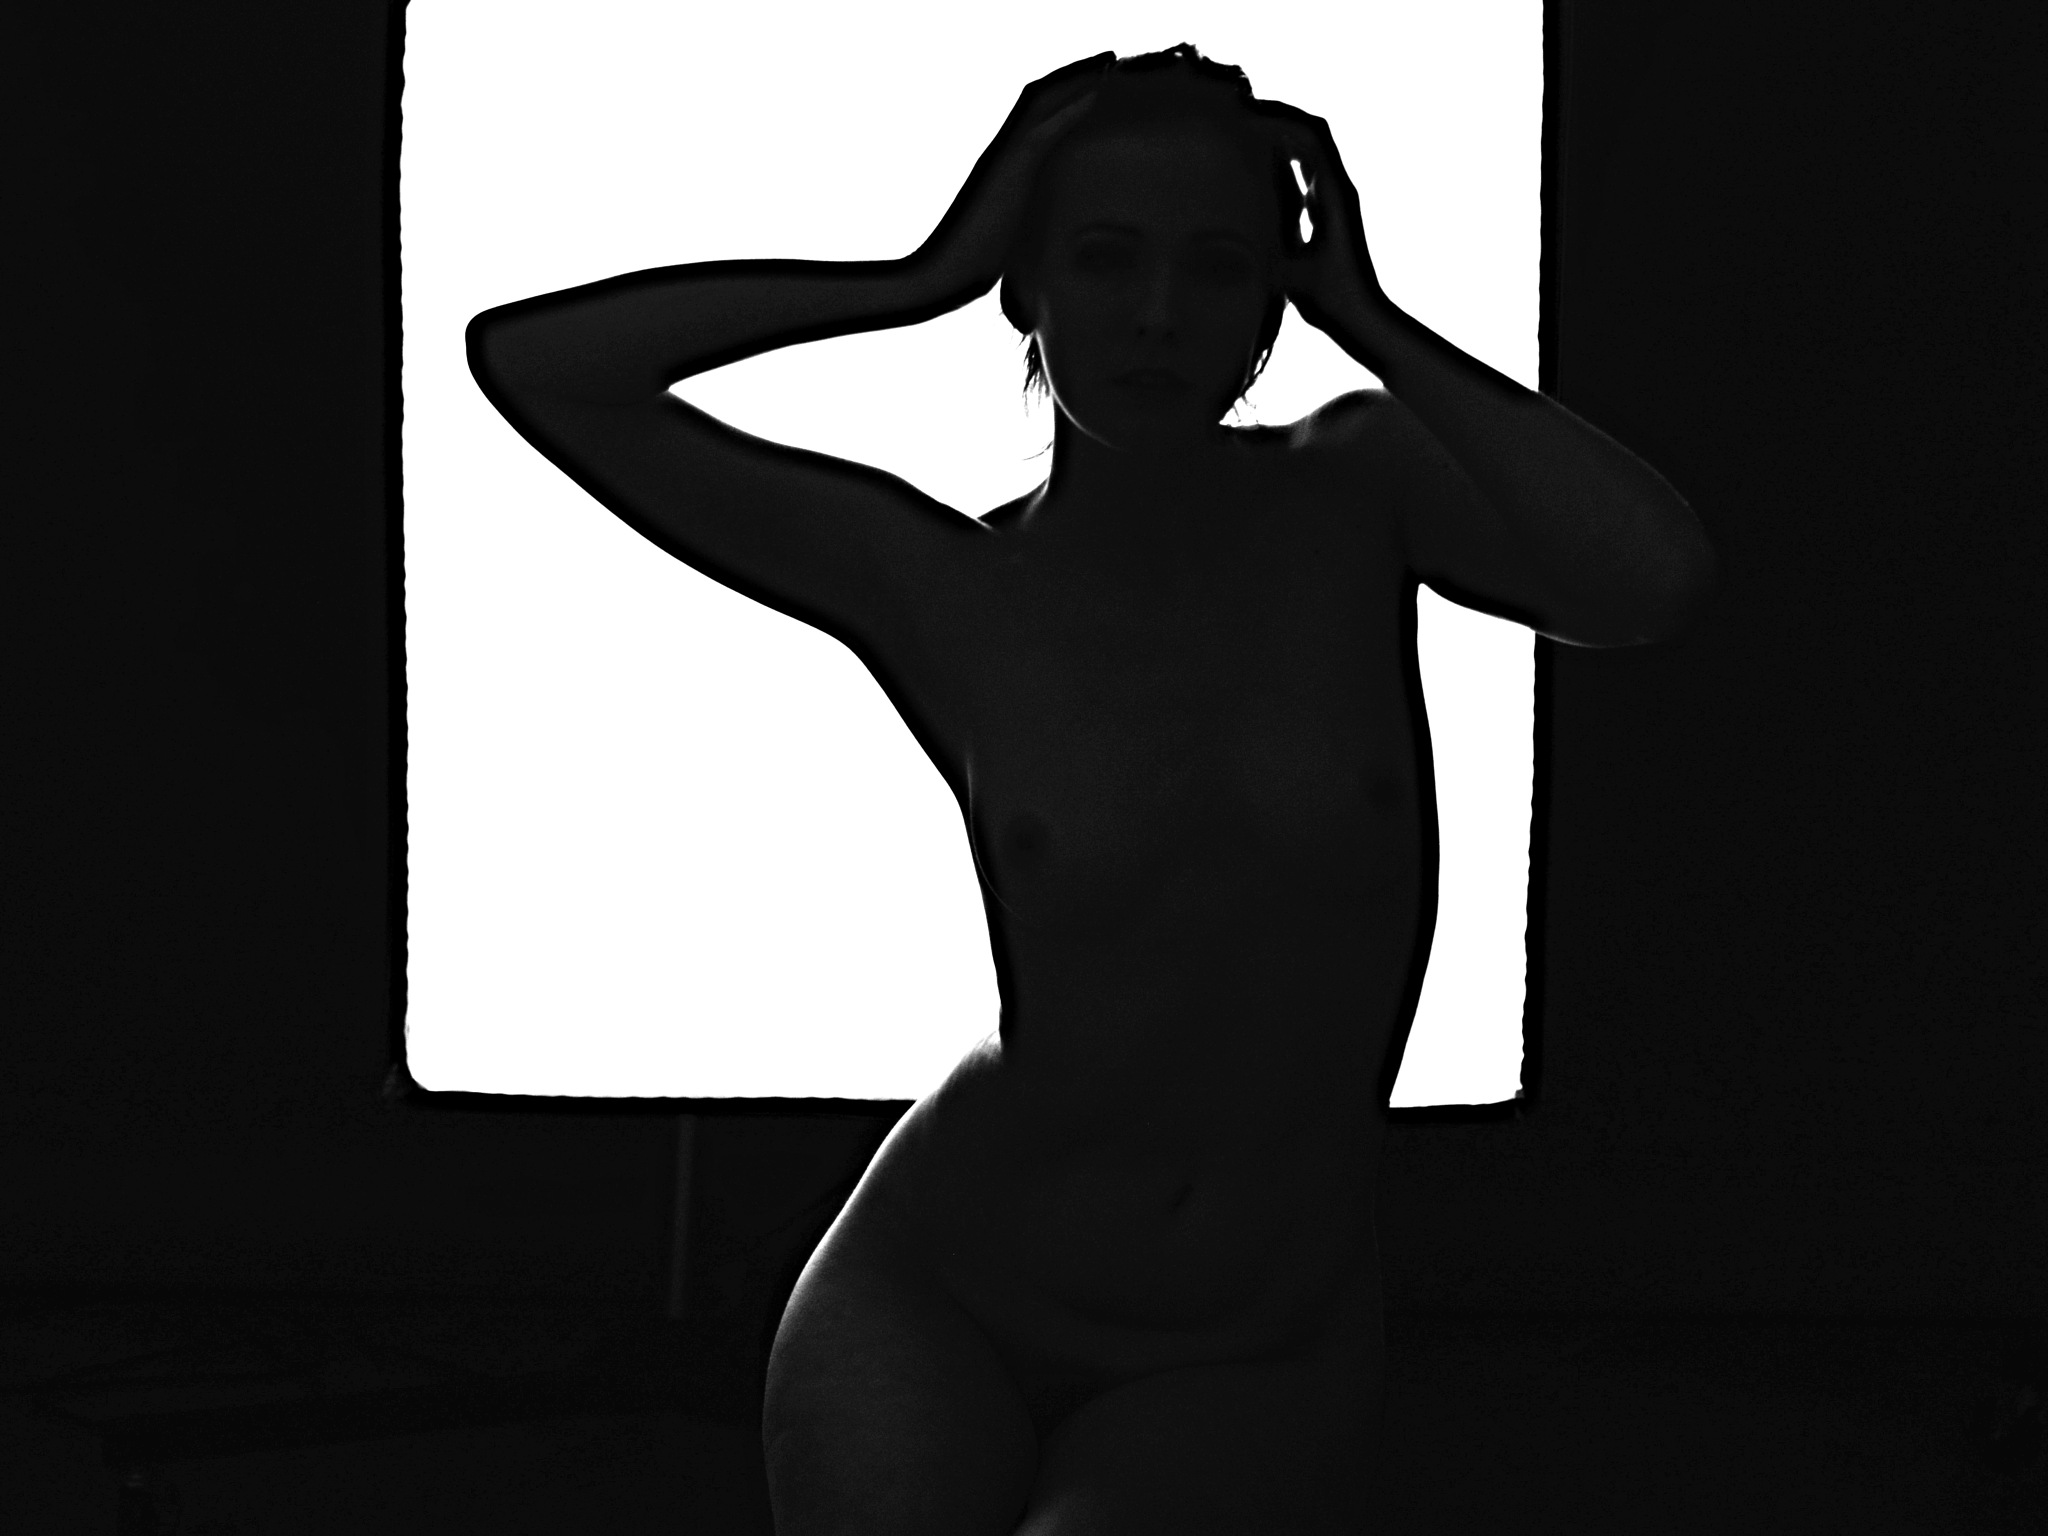 Silhouette of Young Woman. by marcel cintalan